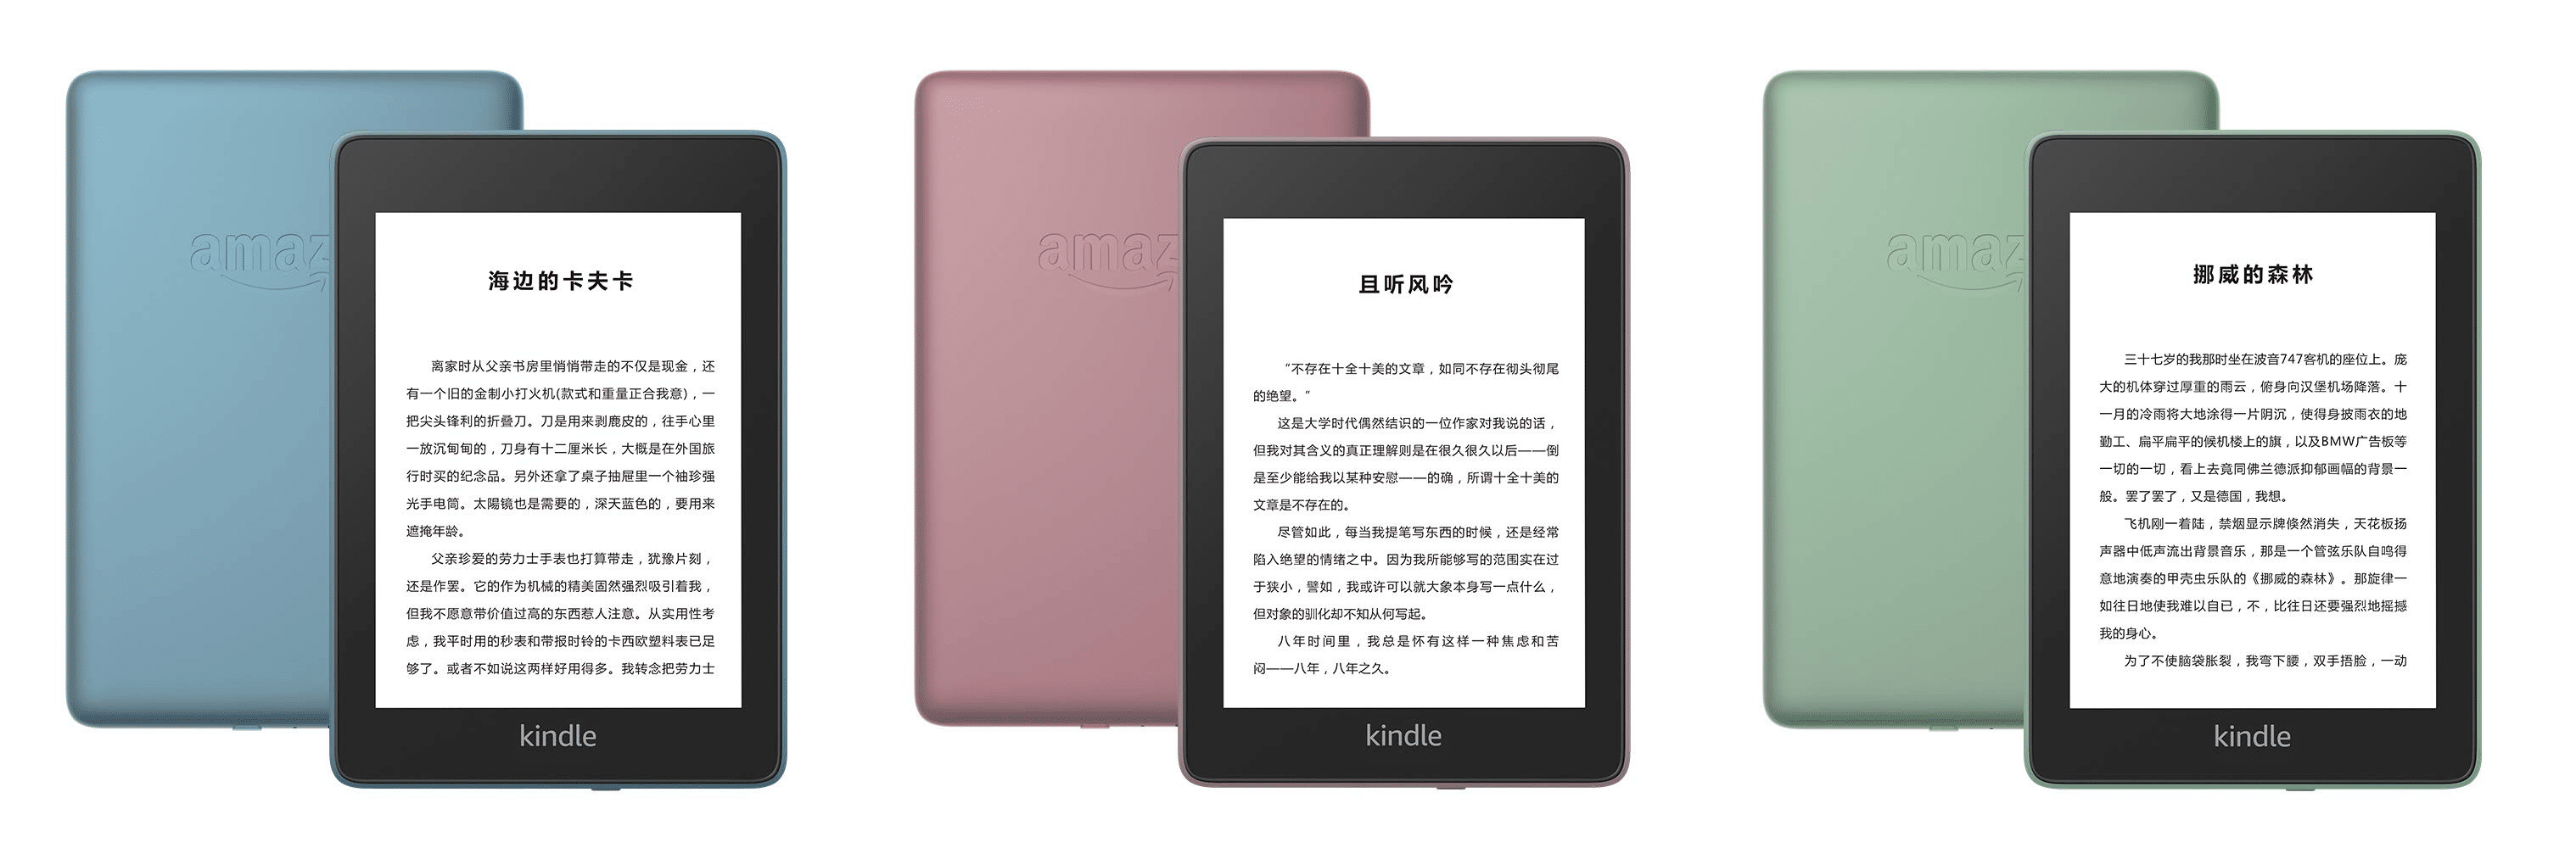 new-kindle-colors.png The Kindle Paperwhite and Oasis will soon get additional color options 电子墨水阅读器